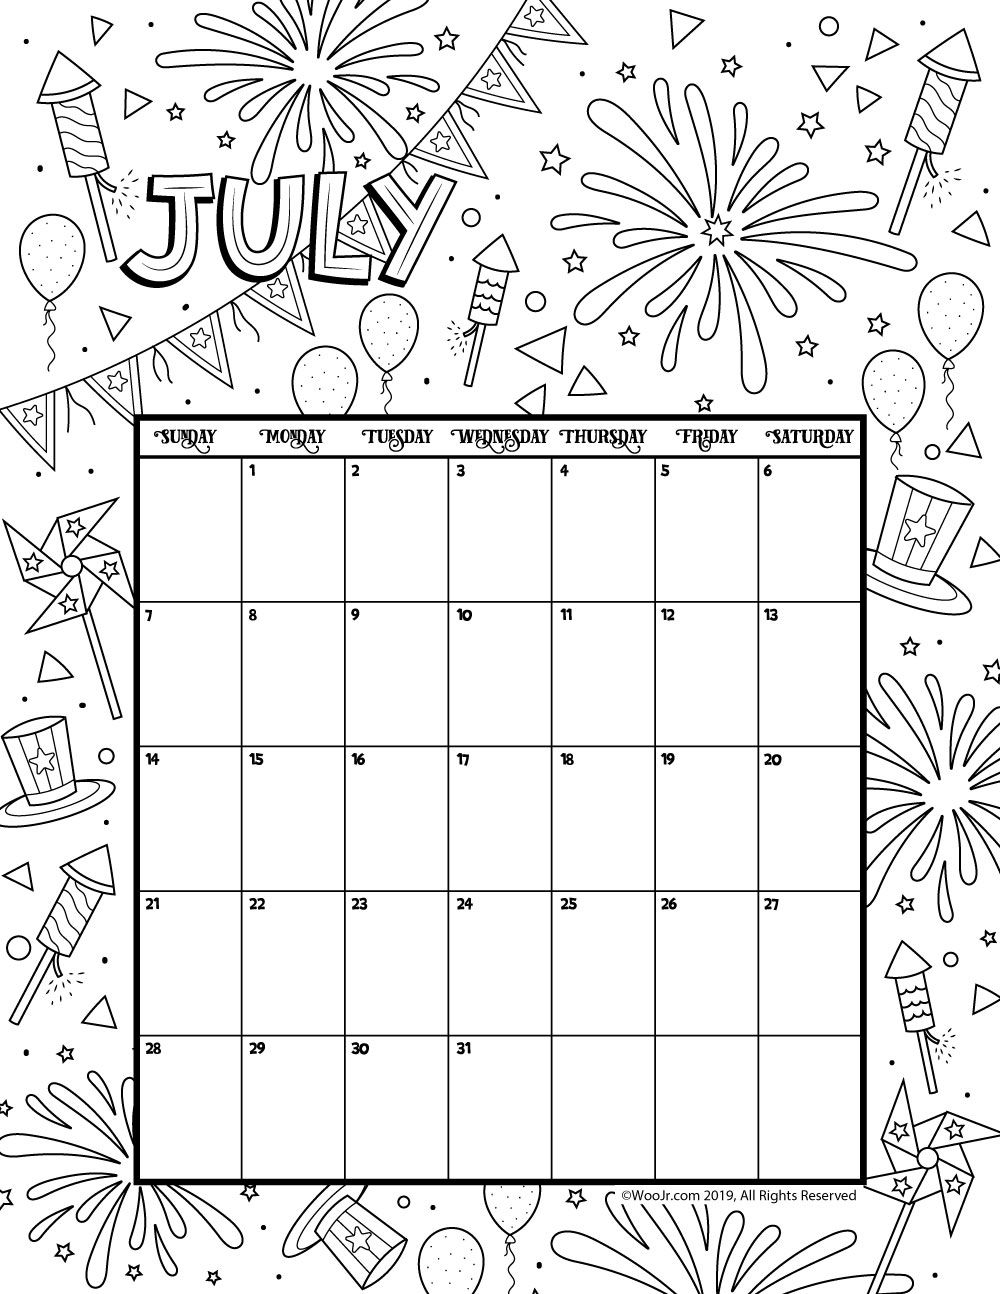 July 2019 Coloring Calendar Daycare Funcare July Calendar